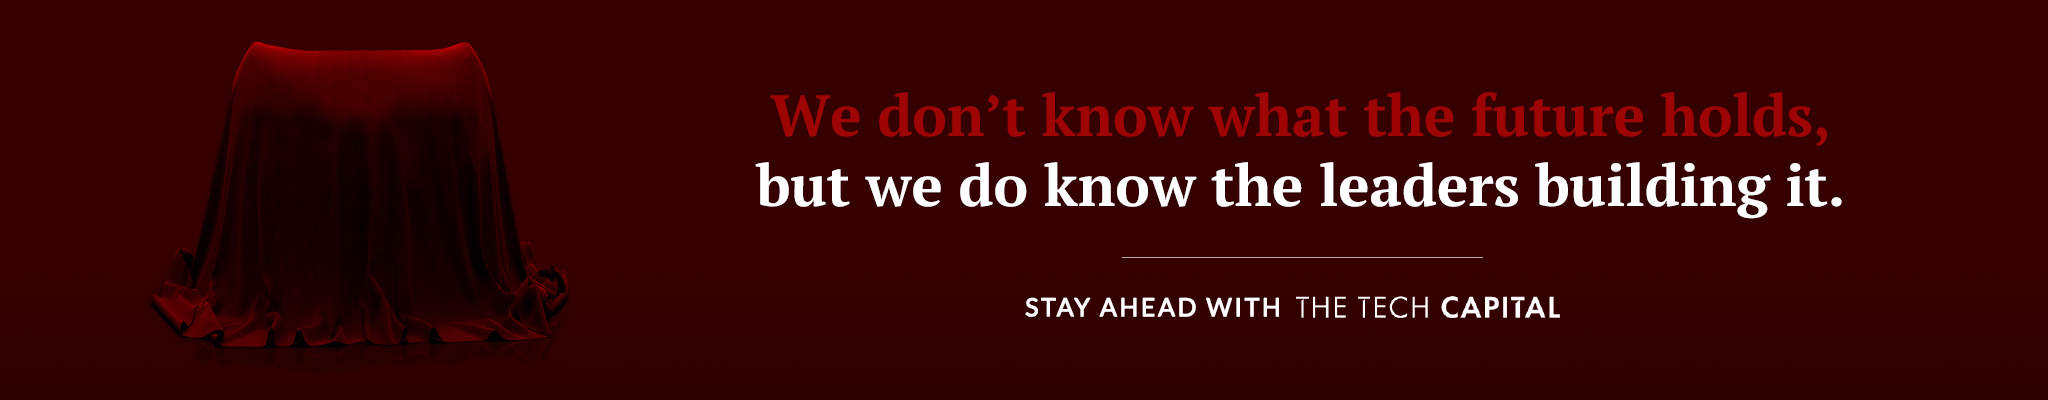 We don't know what the future holds, but we do know the leaders building it